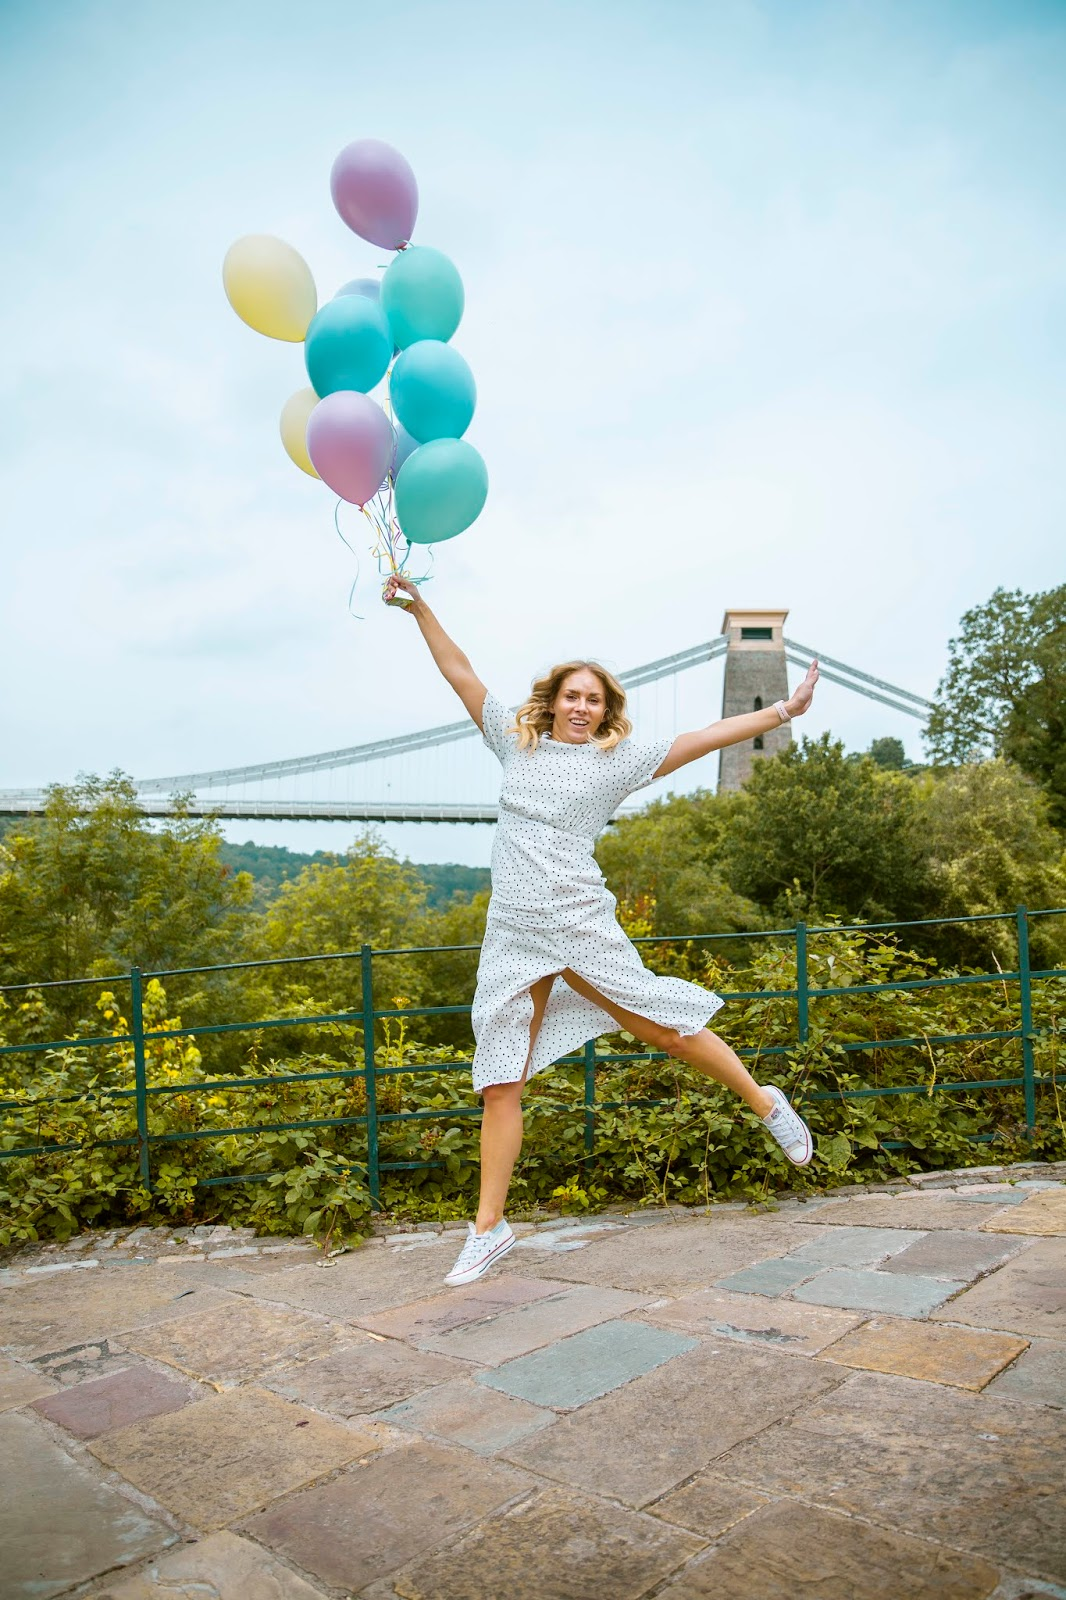 Rachel Emily in a White Midi Dress with Pastel Balloons by the Bristol Suspension Bridge Jumping